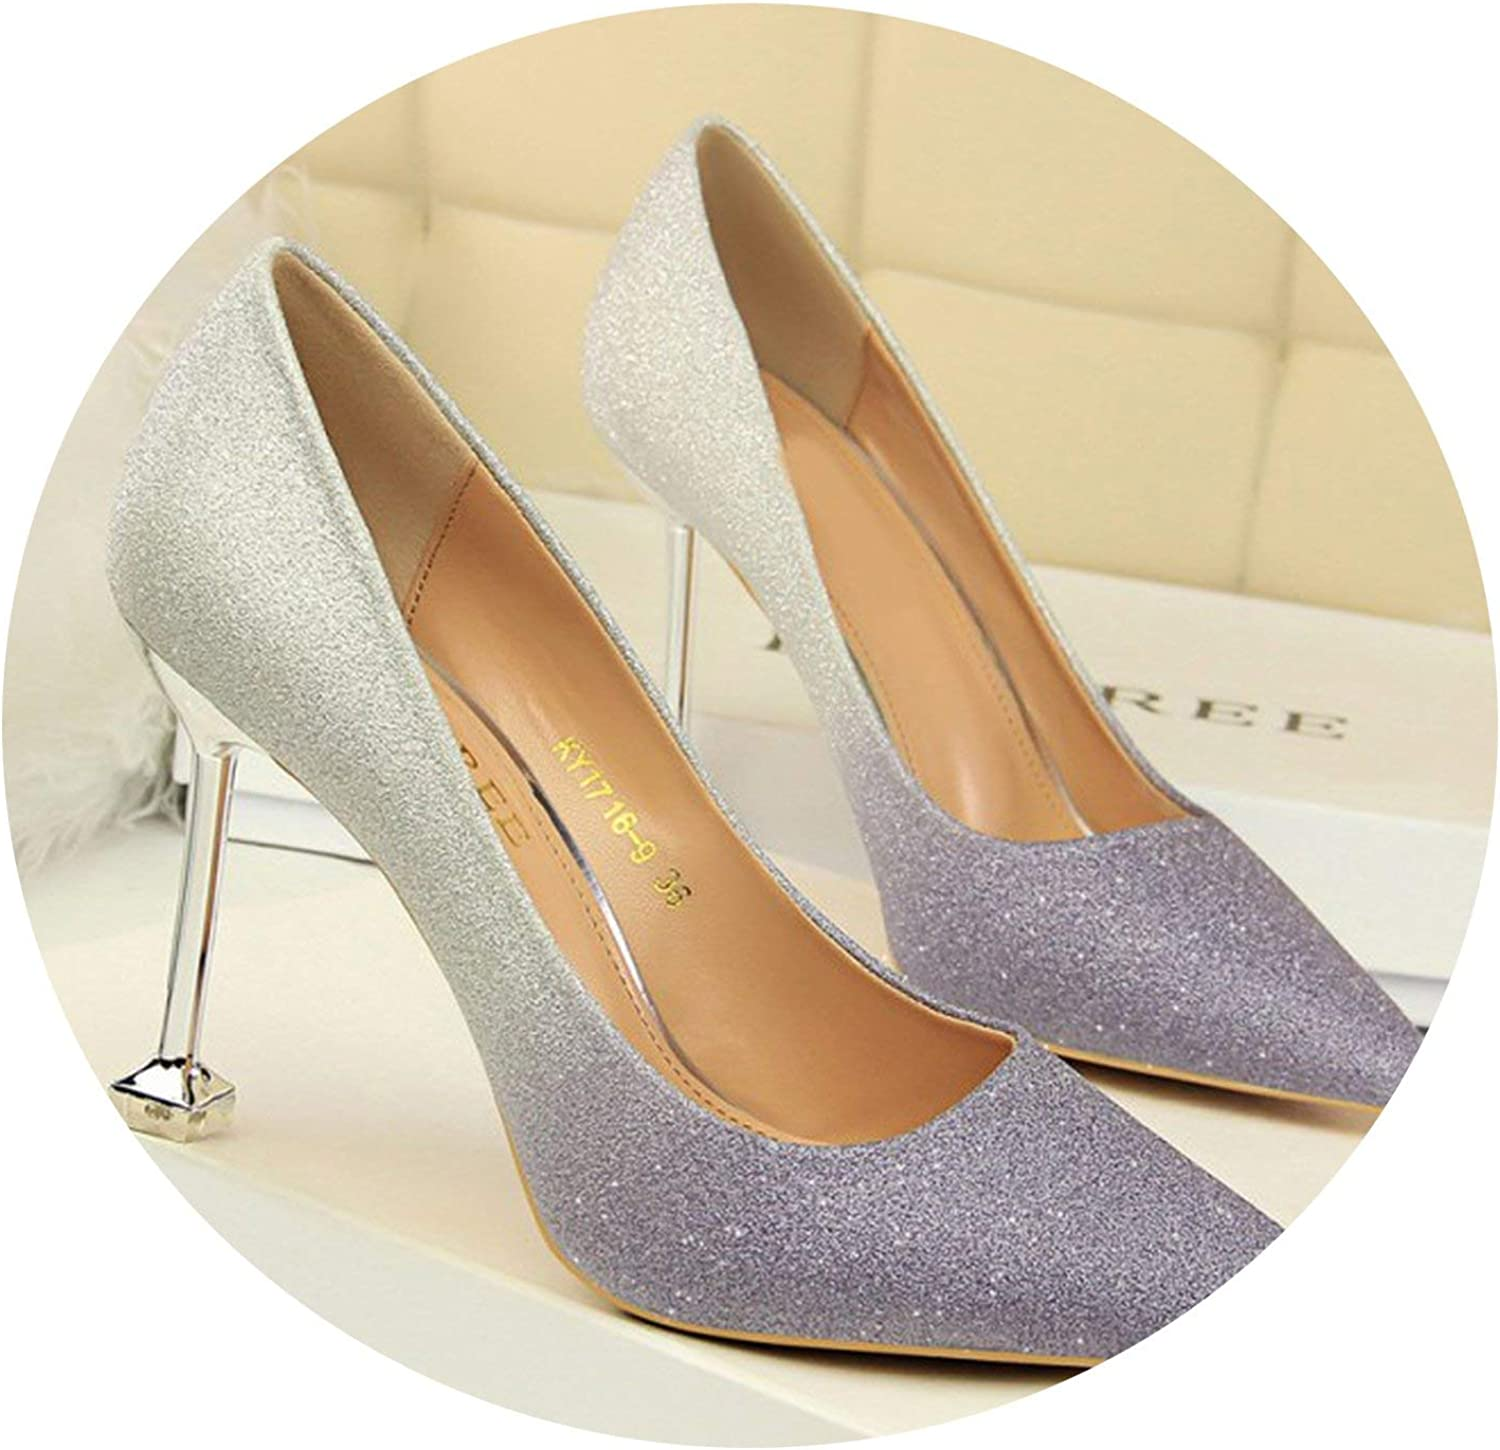 Mr Z Waroom Pointed Toe Women's High Heels shoes Fashion Bling Gradient Sexy Thin Heels Shallow Pumps shoes Wedding Party